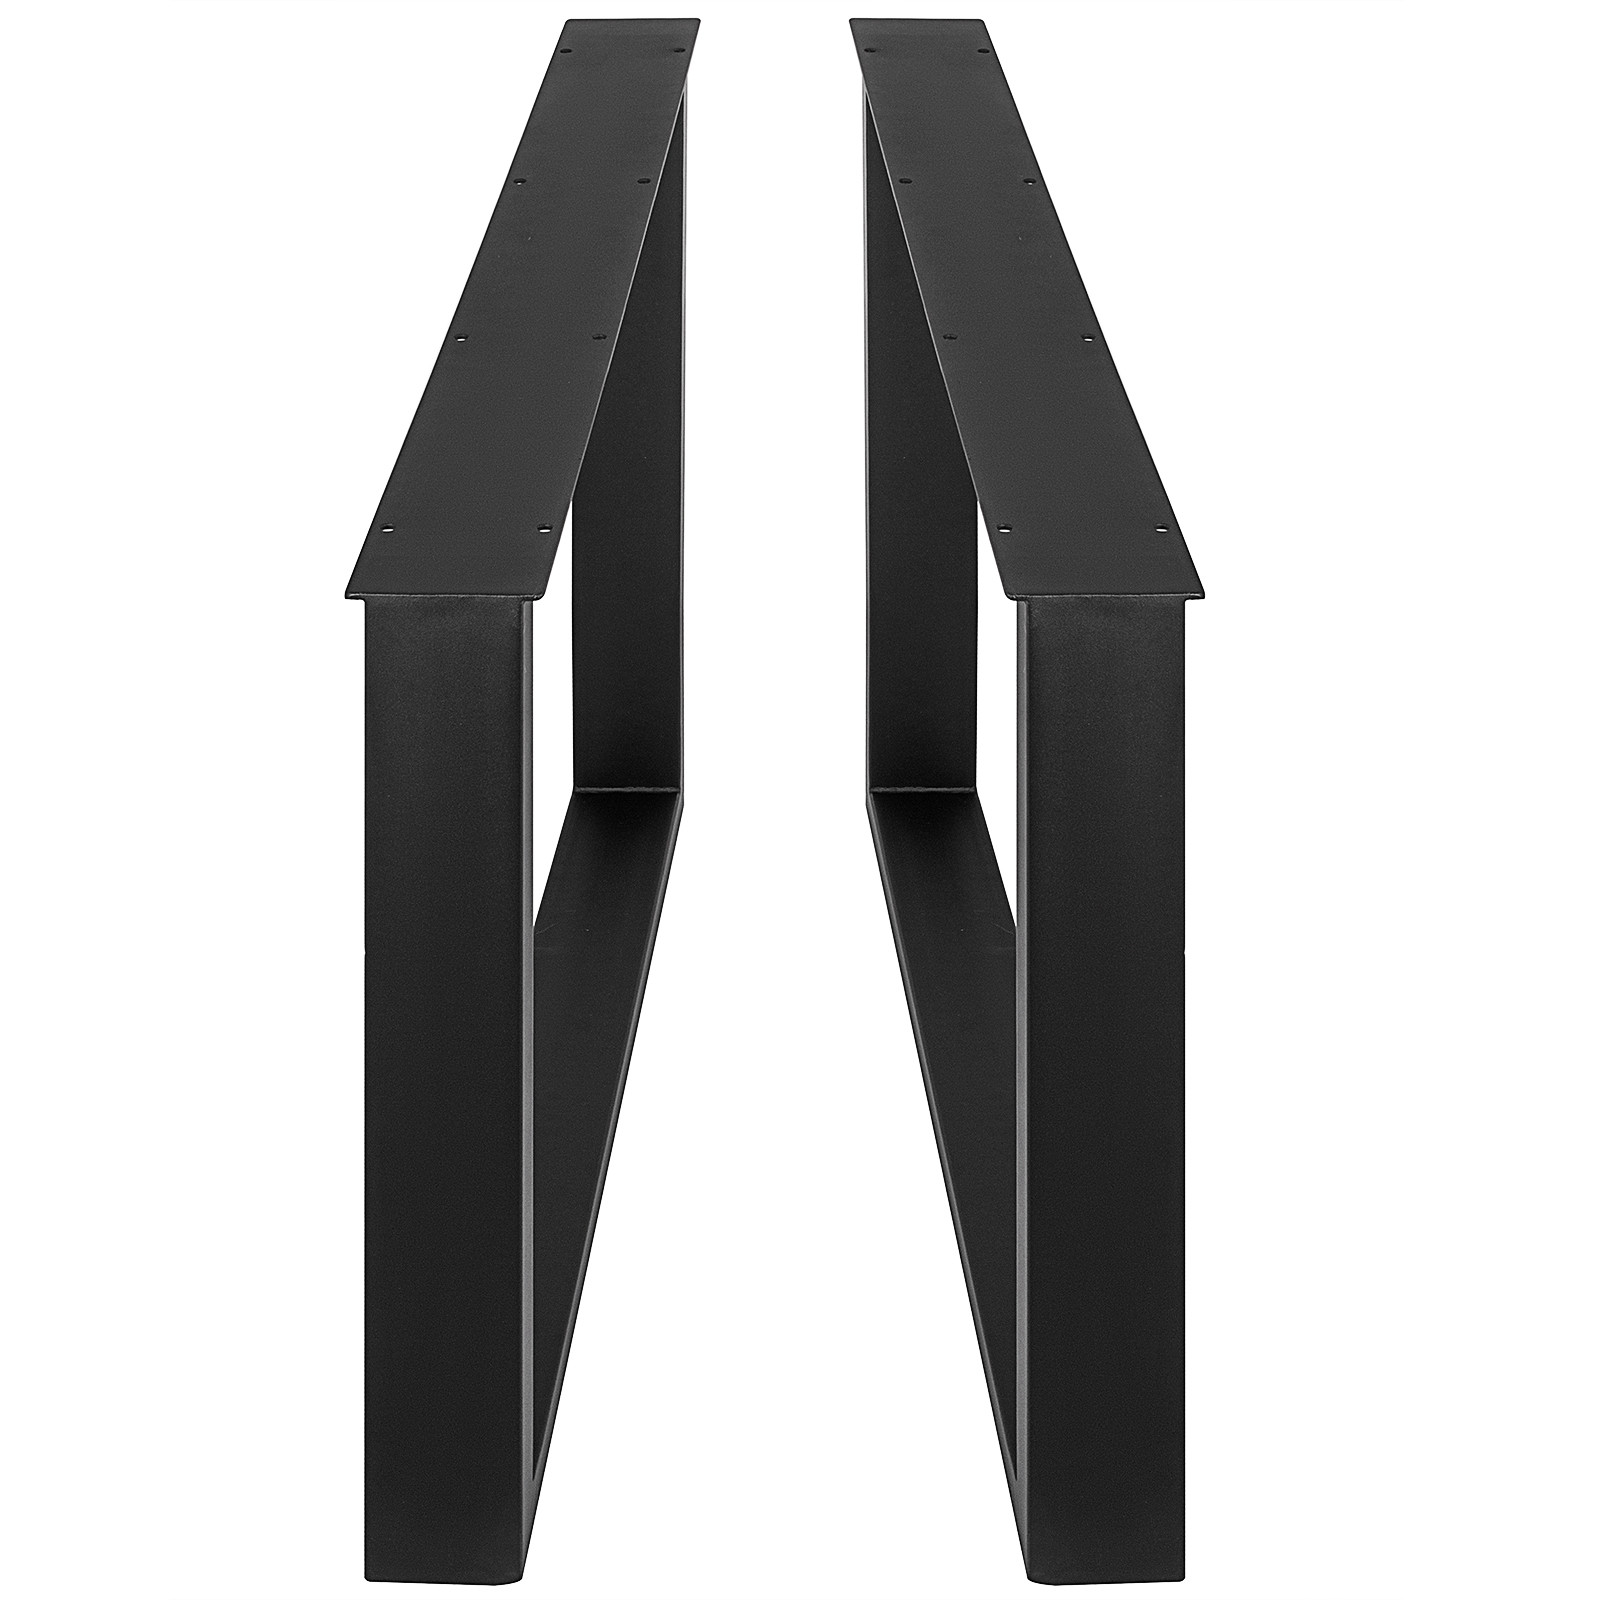 2X-Table-Legs-Black-Dining-Table-Leg-Heavy-Duty-Computer-Desk-Legs-Rectangle thumbnail 41